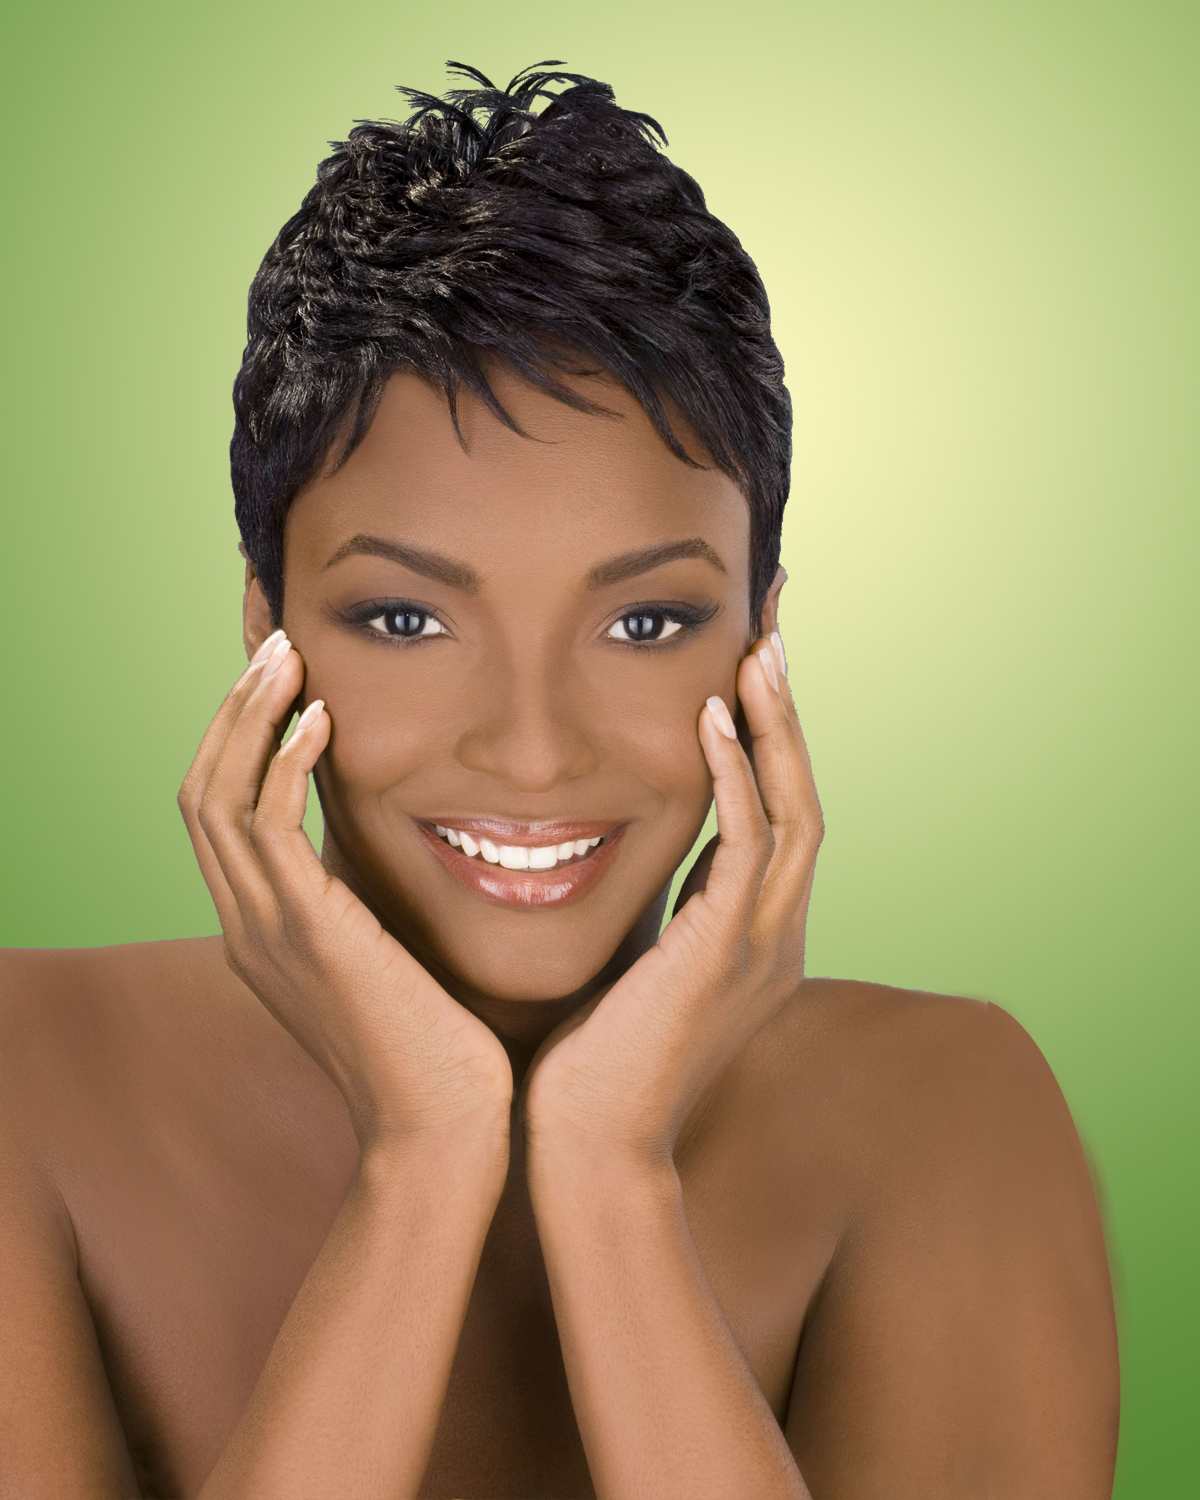 Black Women Short Hair Cuts – Hairstyle For Women & Man With Regard To Black Woman Short Hairstyles (View 14 of 25)